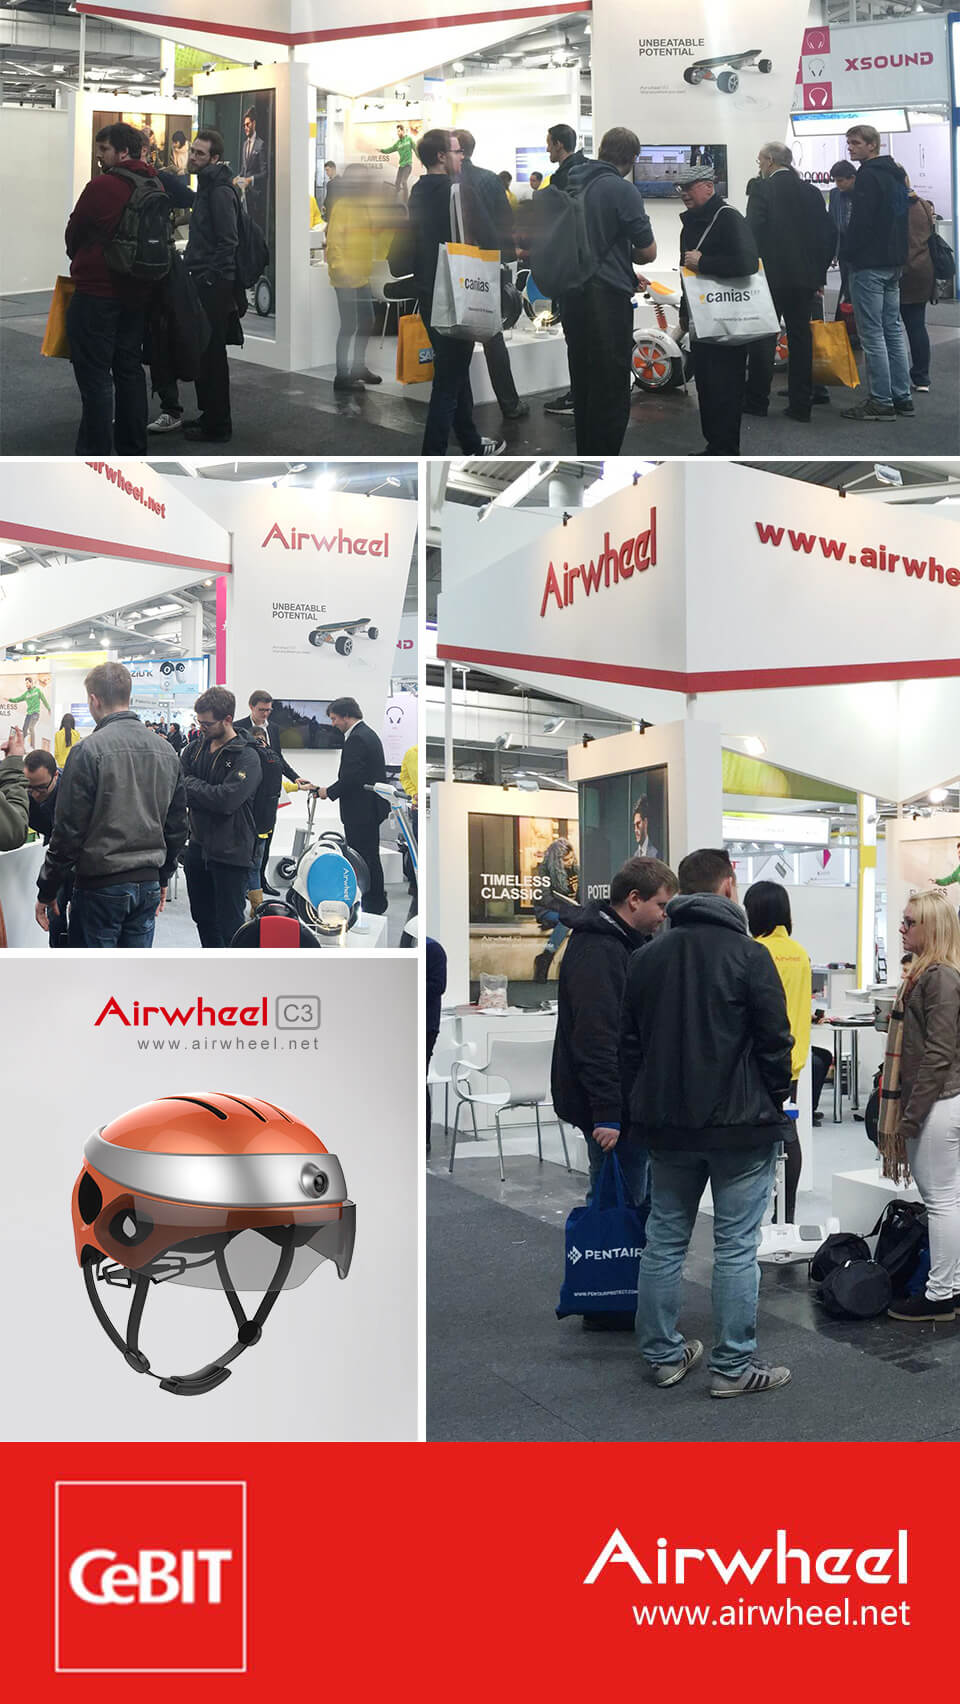 http://www.airwheel.net/scooter/cebit-3.14-4.jpg